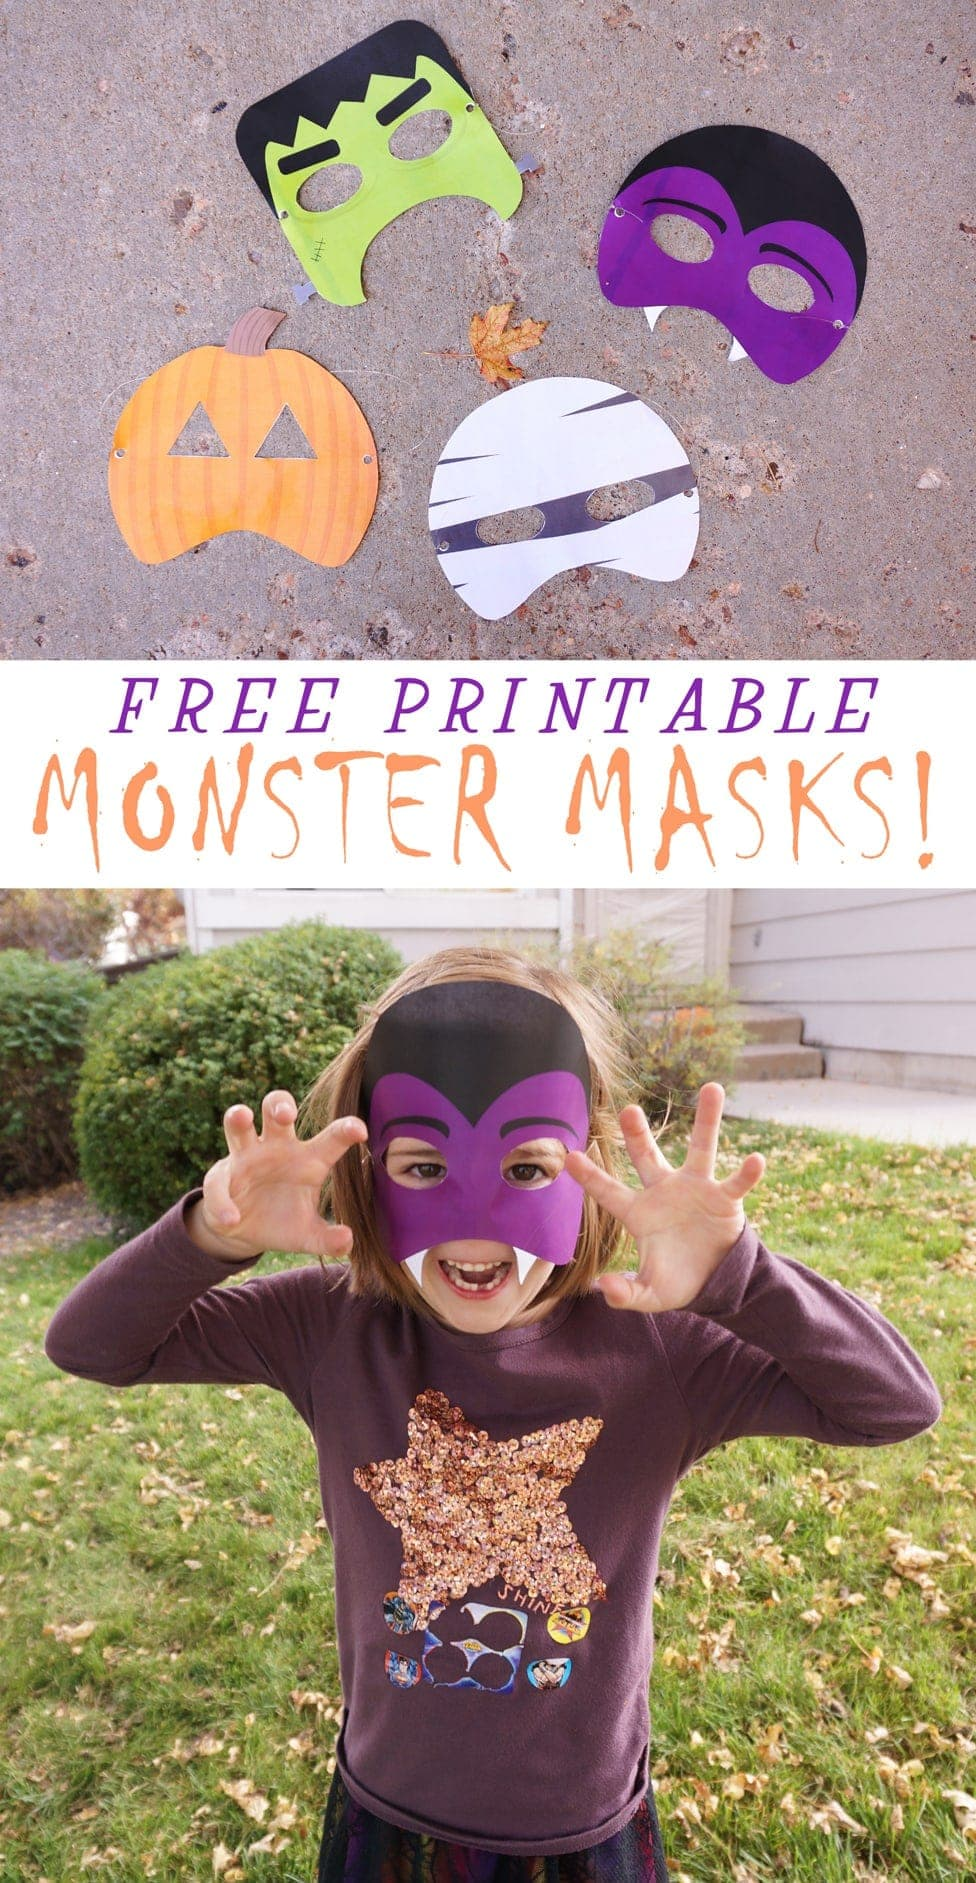 freeprintablemonstermasks-01